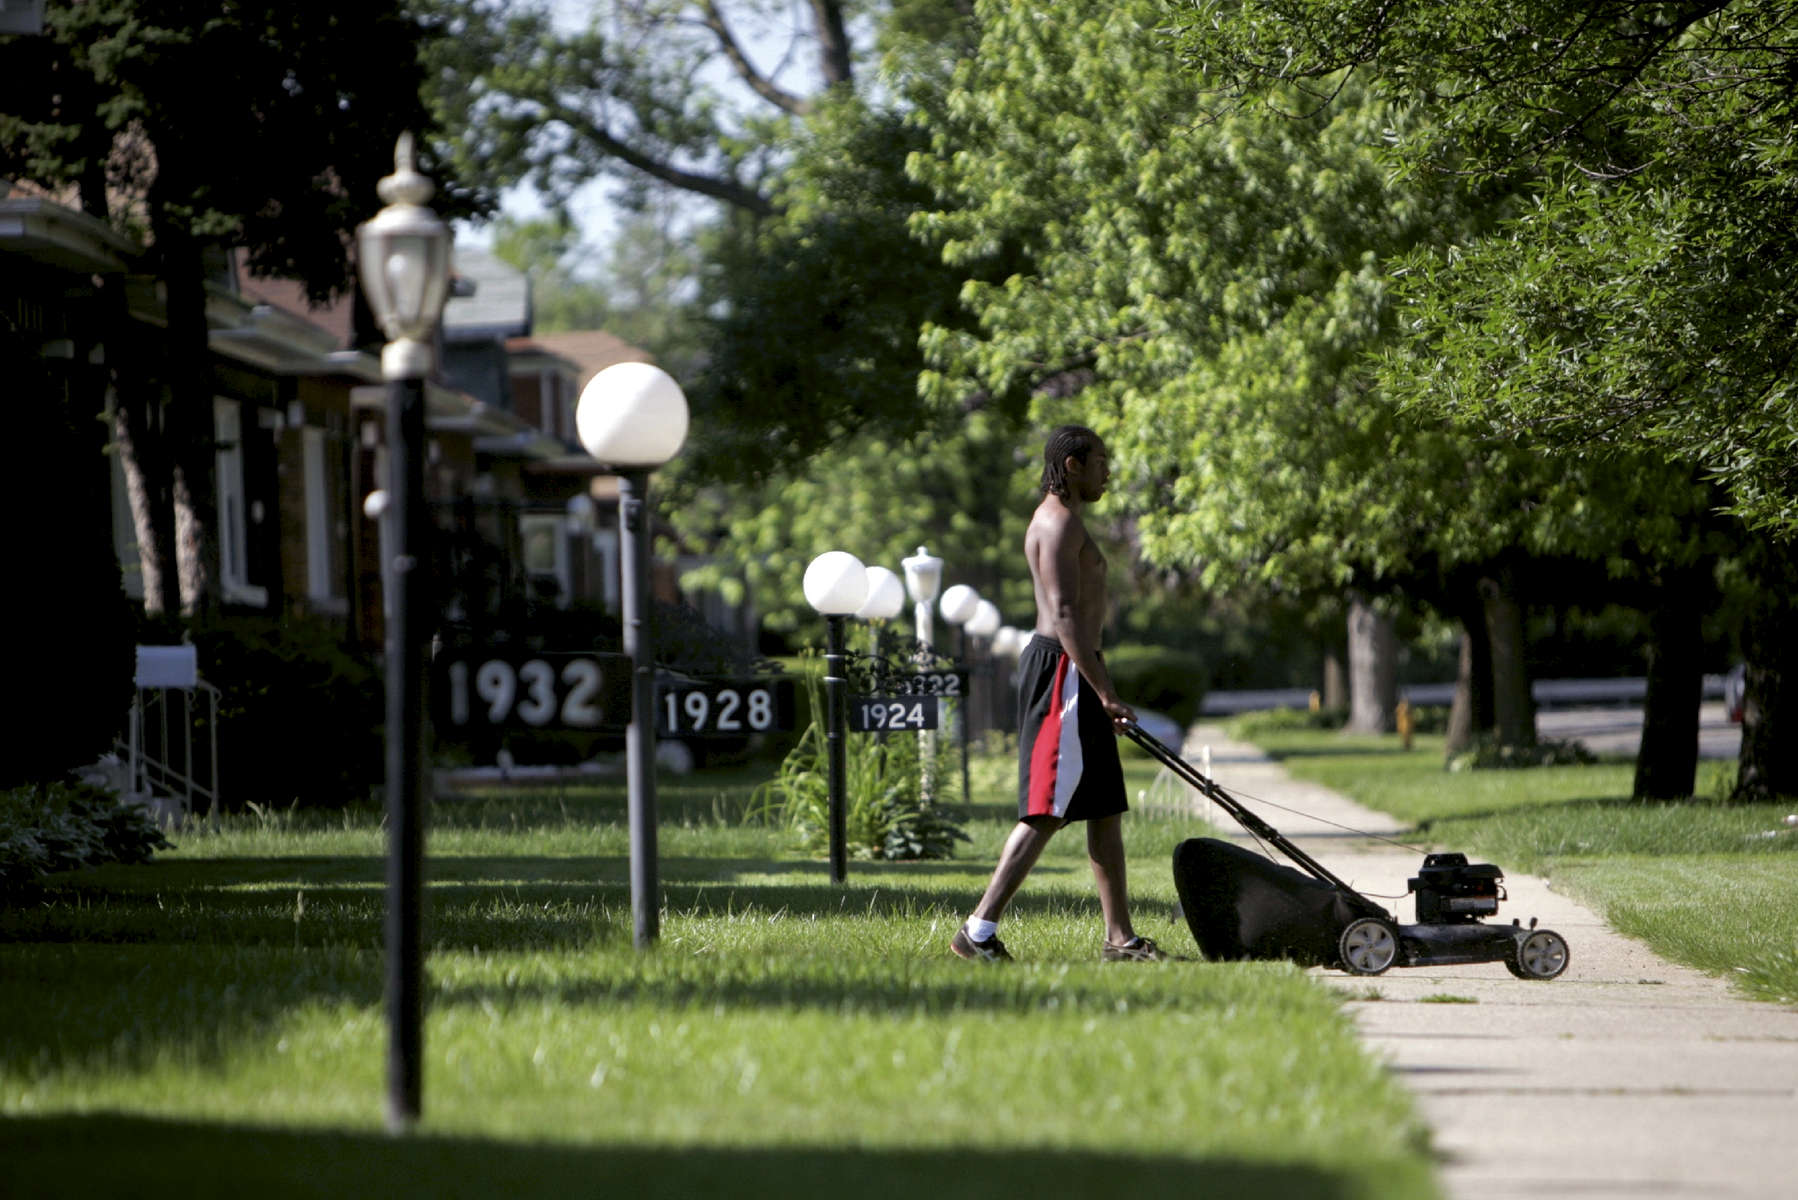 Carl Foreside, 19, home for the summer after his freshman year at the University of Iowa, mows the lawn of his family home on 11th Avenue in Maywood, Illinois. Numerous houses on 11th Avenue and the surrounding streets are boarded up due to foreclosure. In a town of about 27,000 residents, 1500 housing units are in foreclosure, some of which are owned by US Bank.